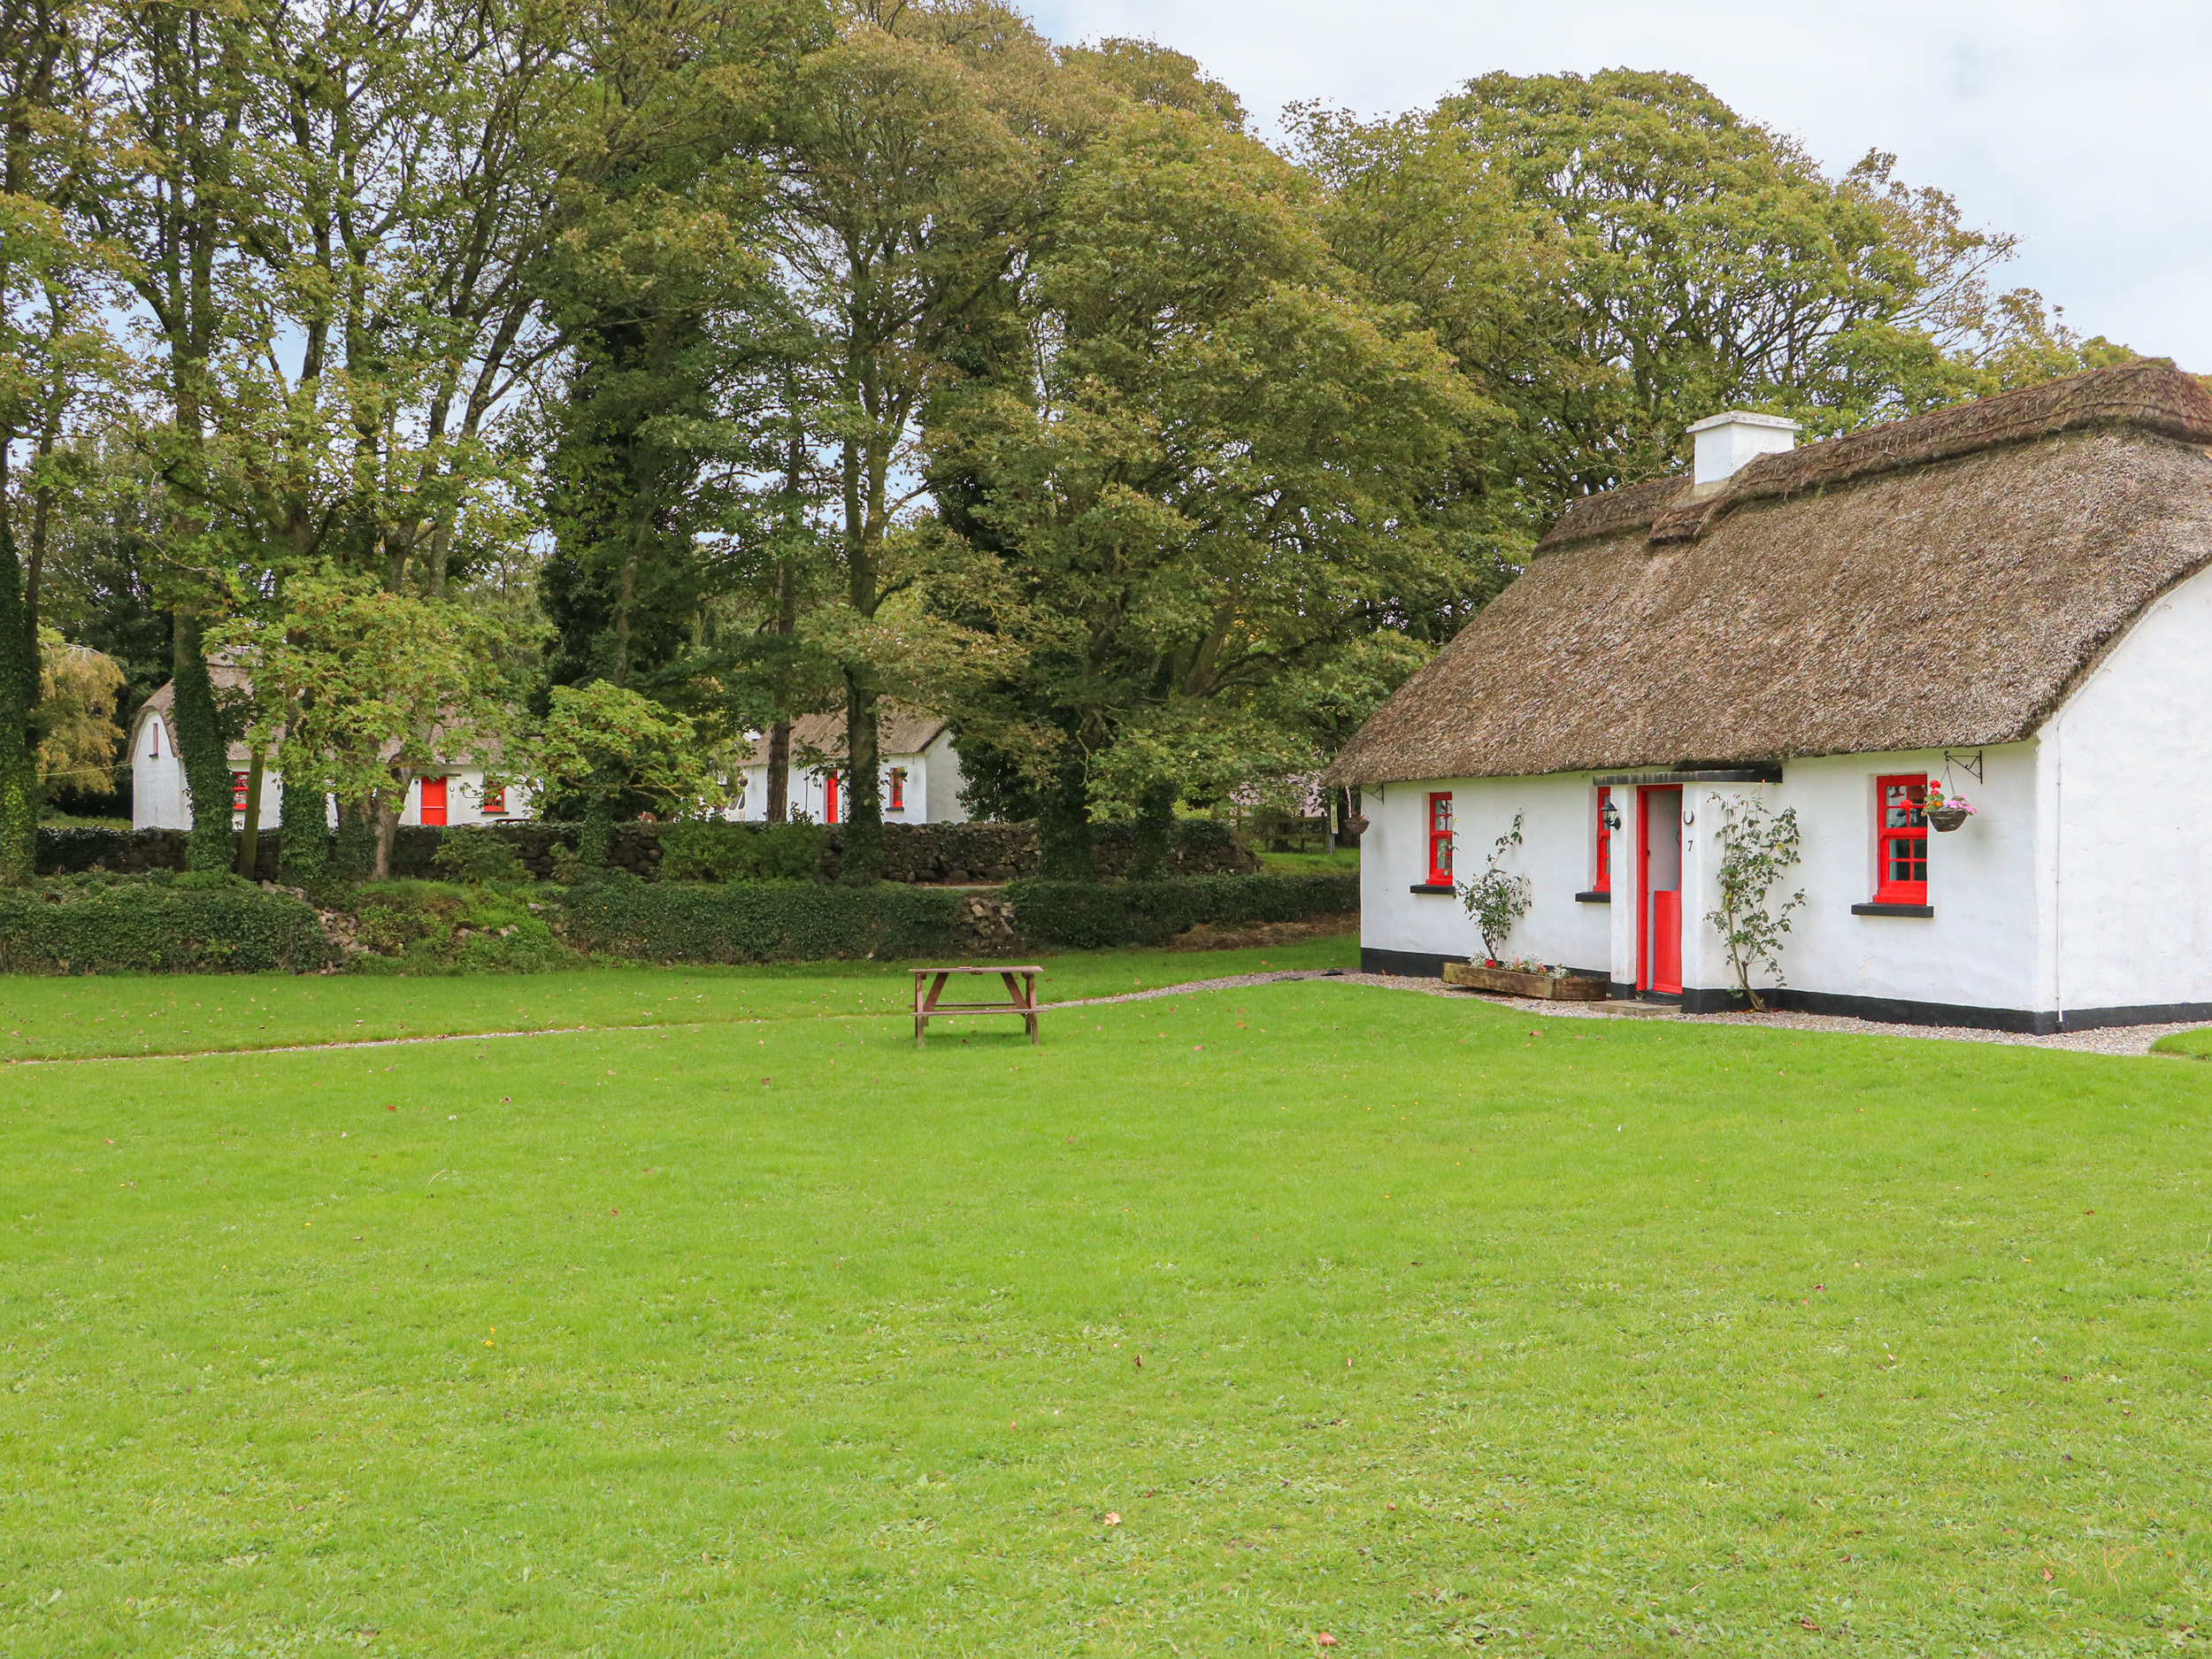 No. 7 Lough Derg Thatched Cottages, County Tipperary